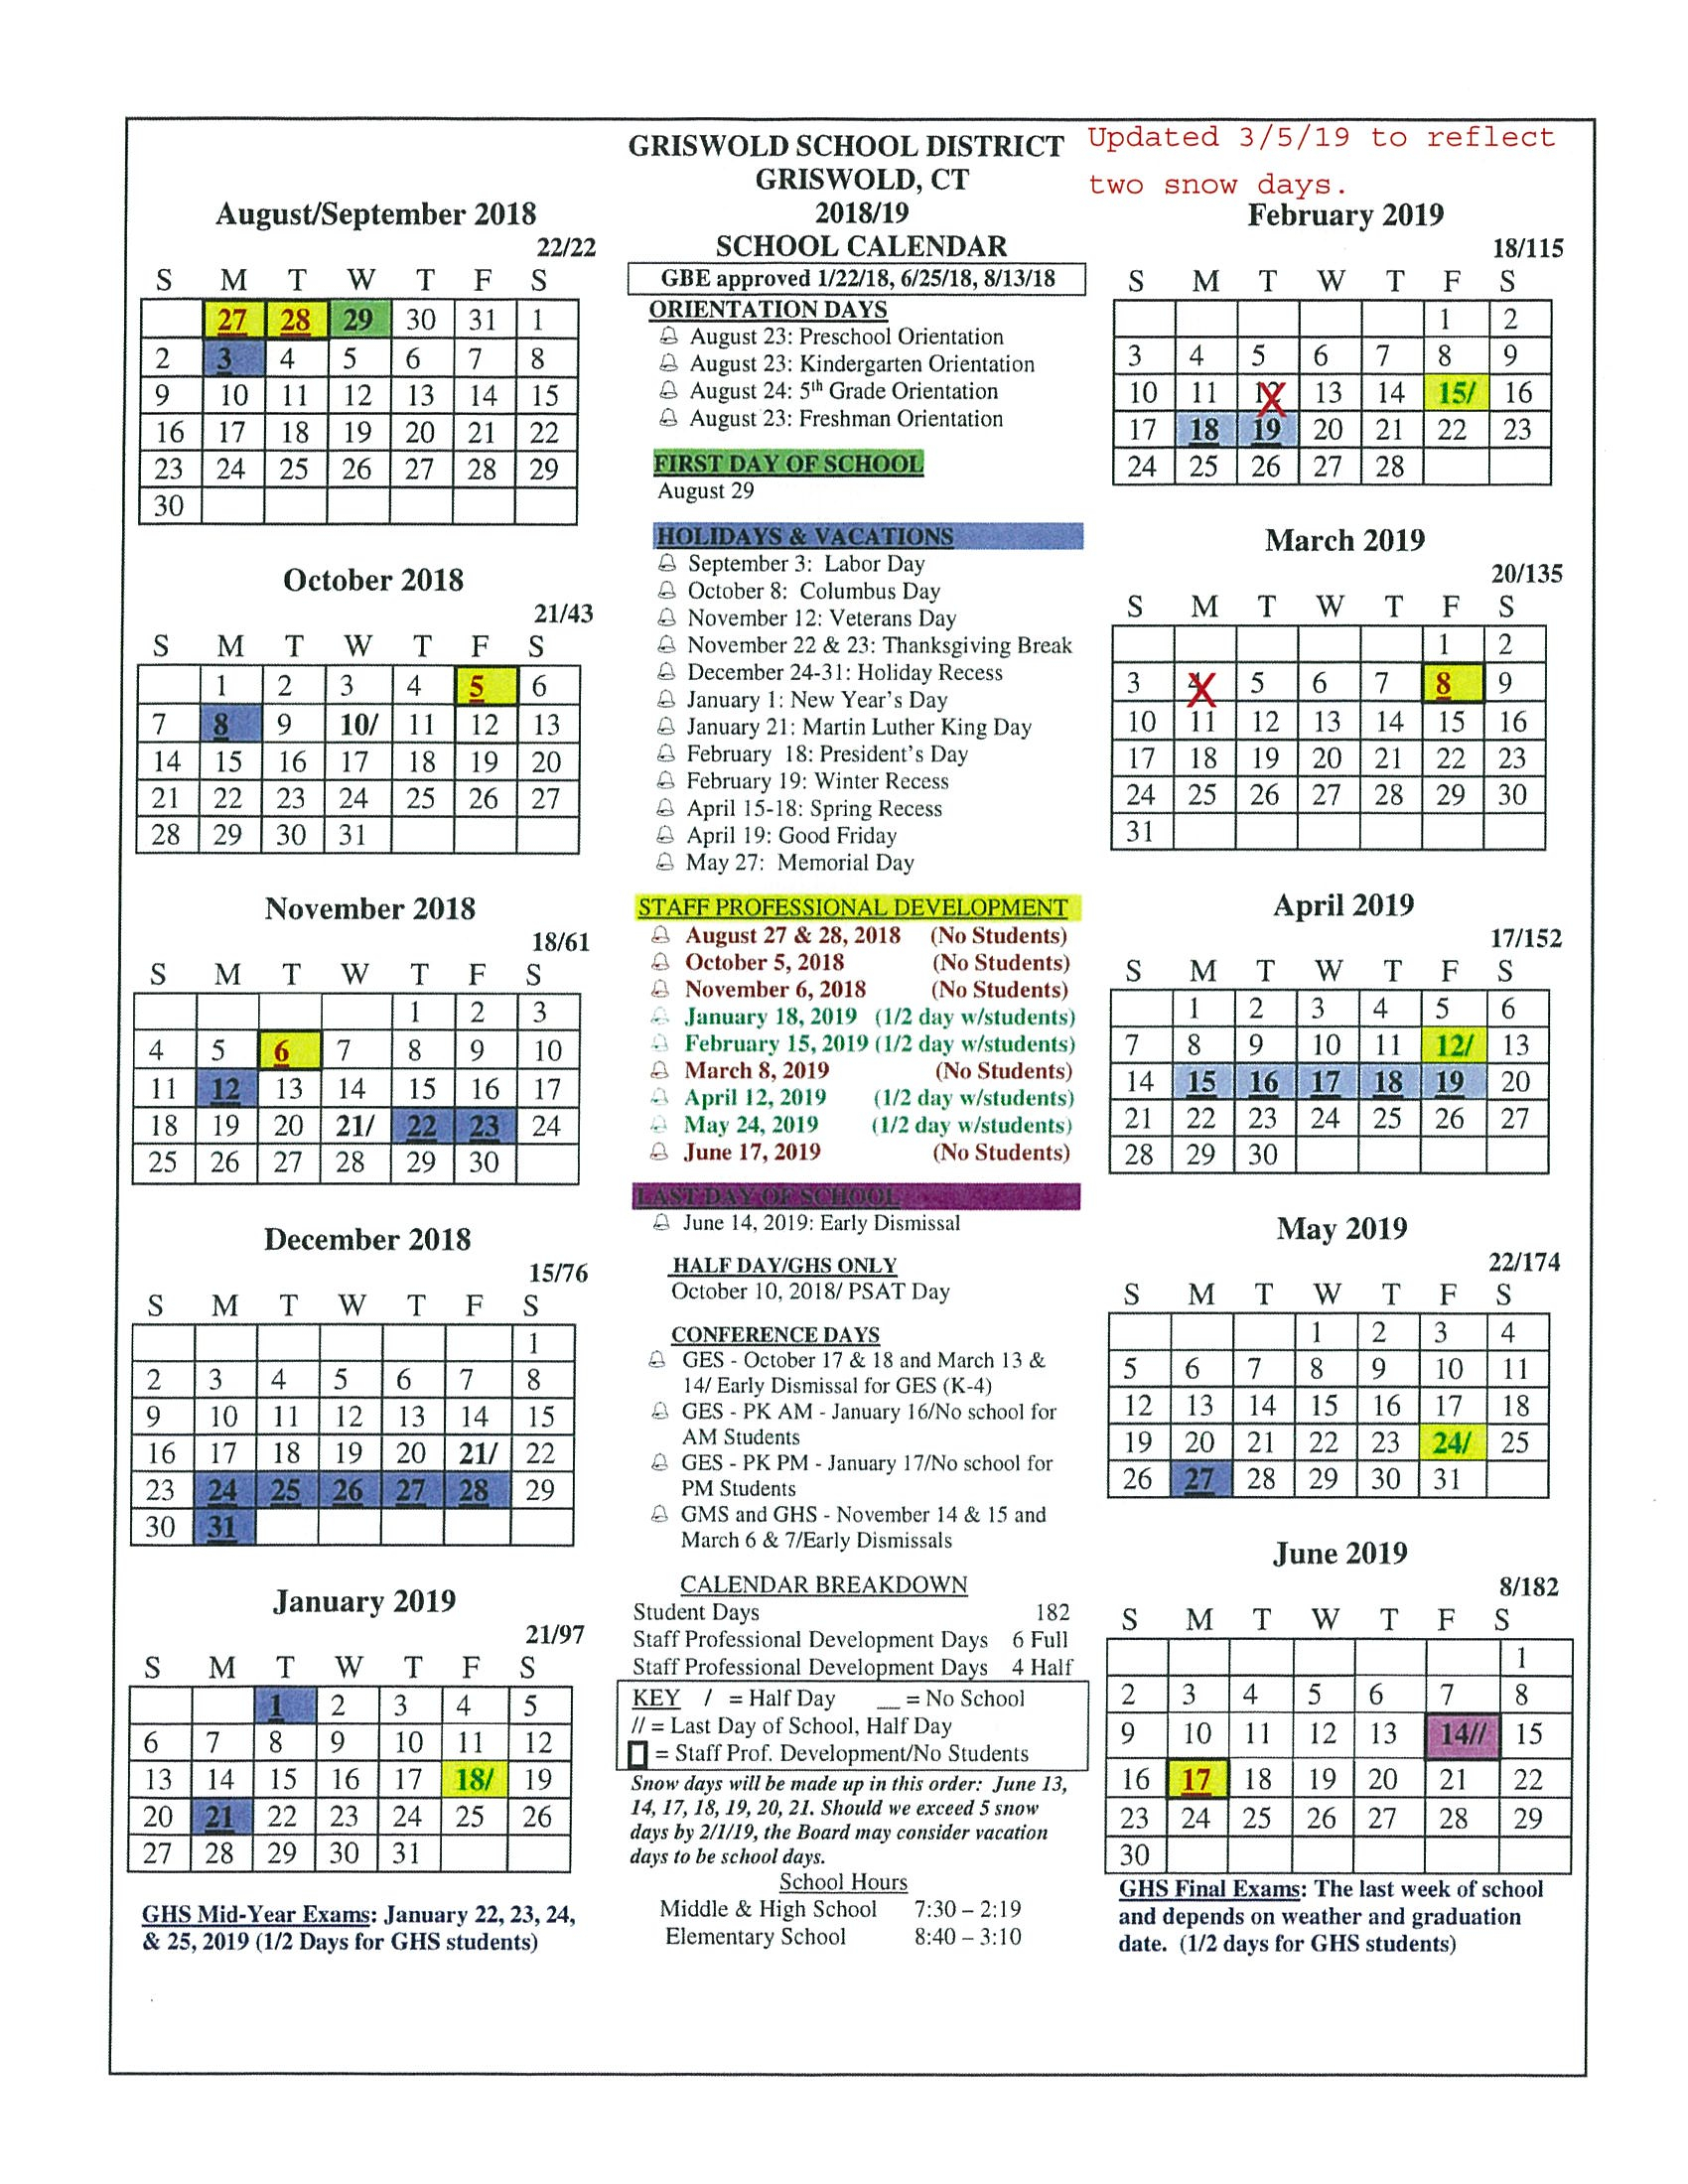 Board Approved Academic Calendar - Griswold Public Schools Inside Spring Calendar 2020 Collin County Community College